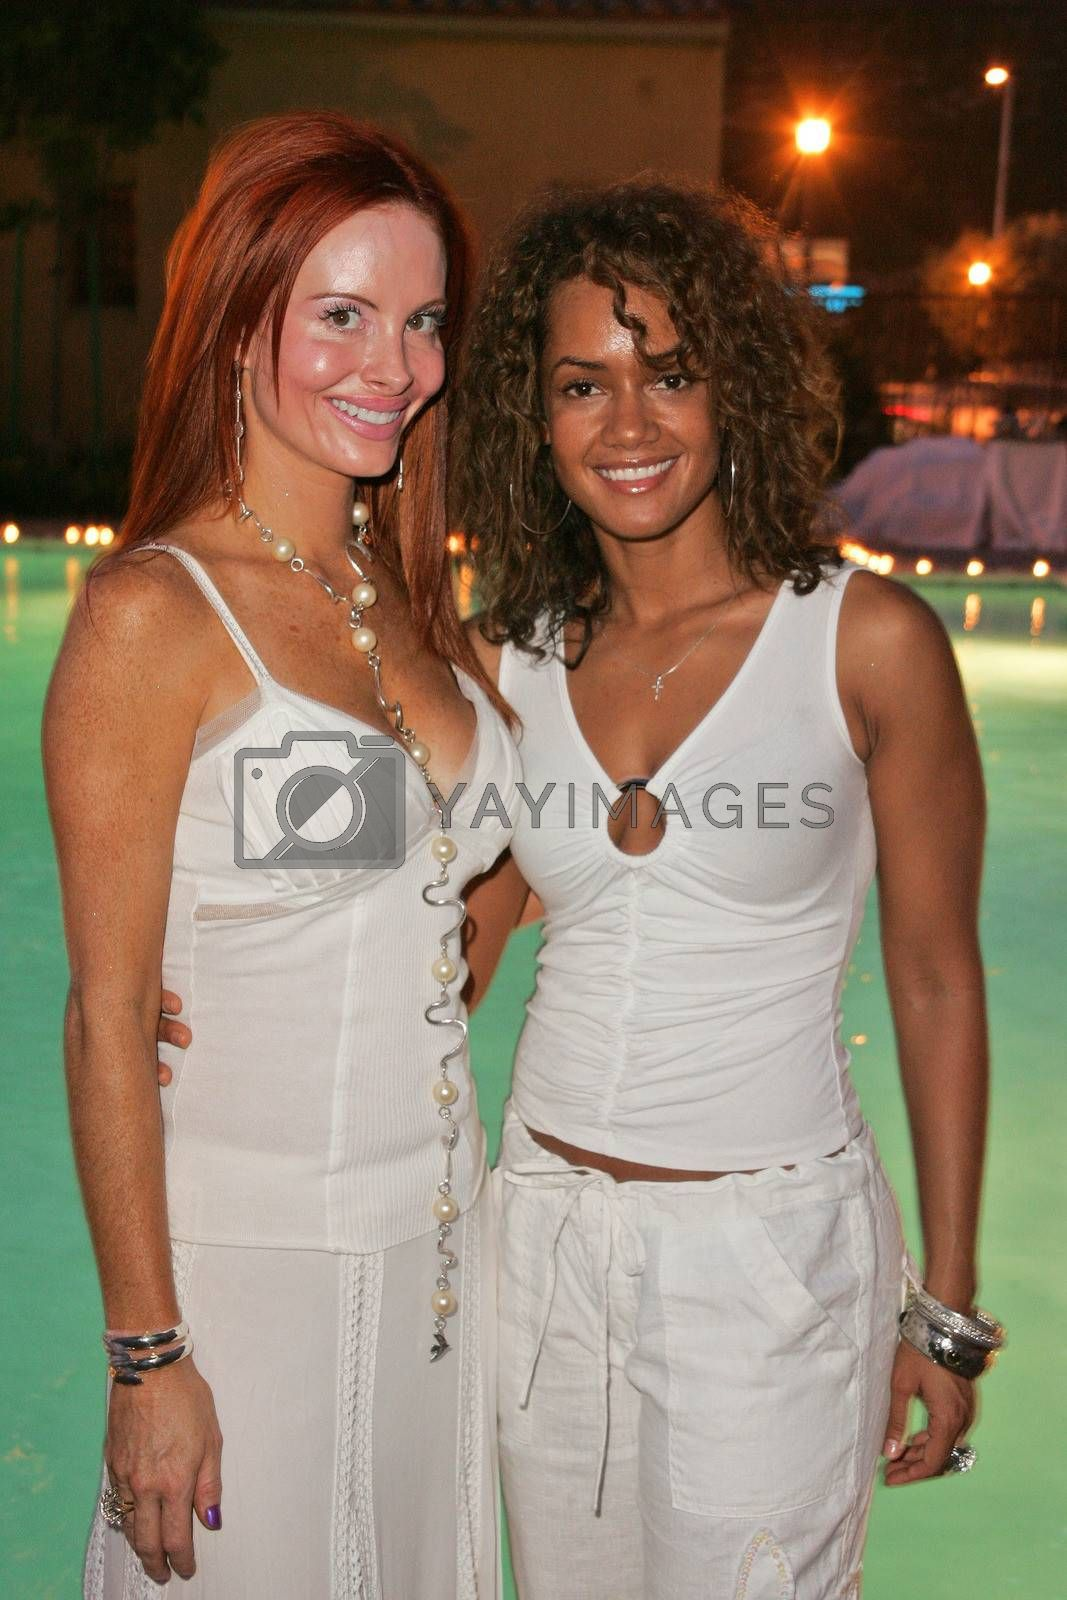 Phoebe Price and Tammy Townsend at the White Summer Pamper Party Hosted by G Report Magazine and H2O Skin Spa, Private Location, Porter Ranch, CA 07-31-05